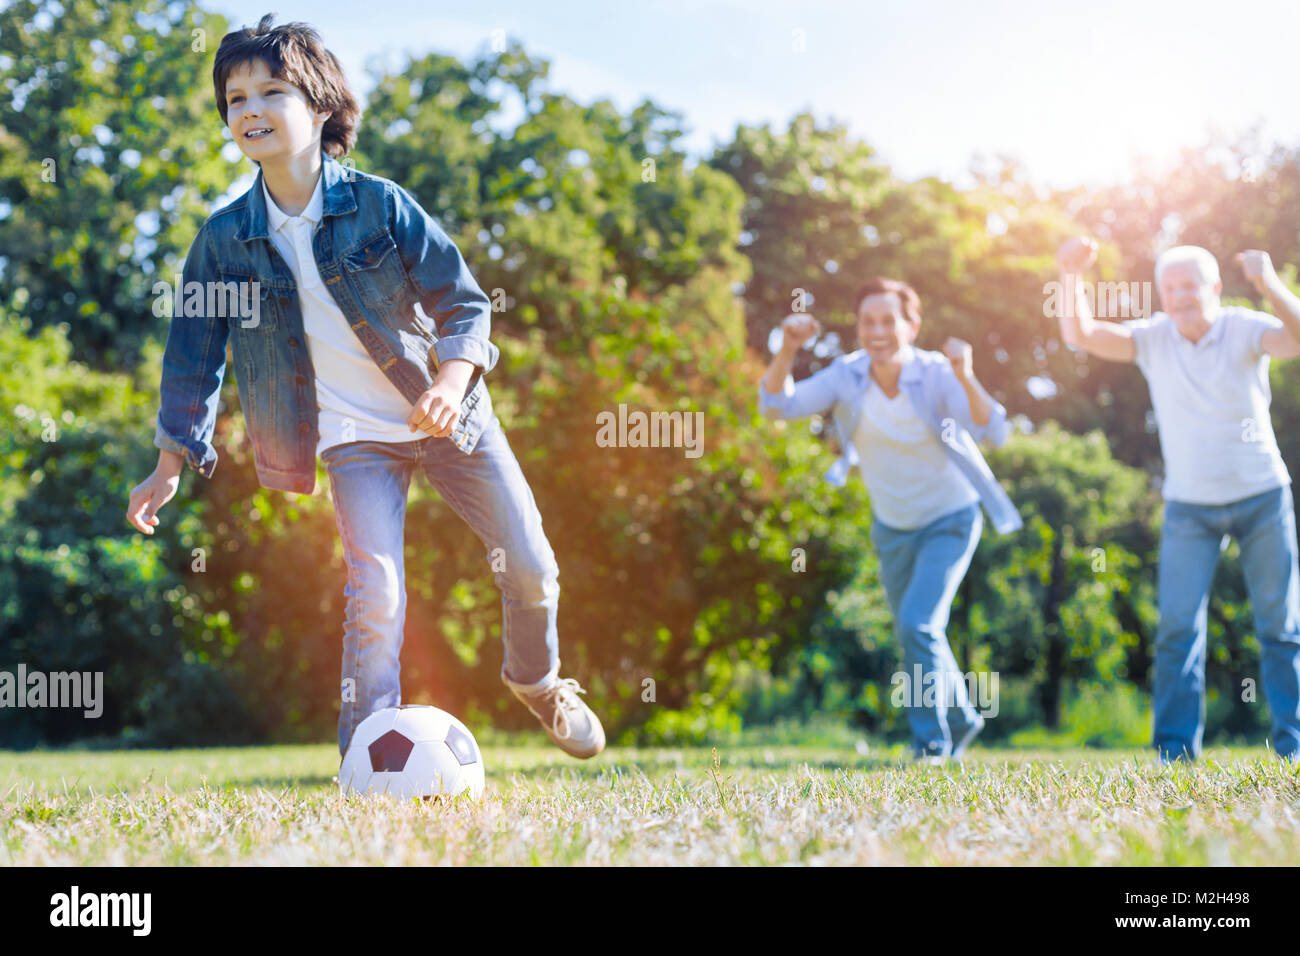 Father and granddad cheering for grandson playing football - Stock Image